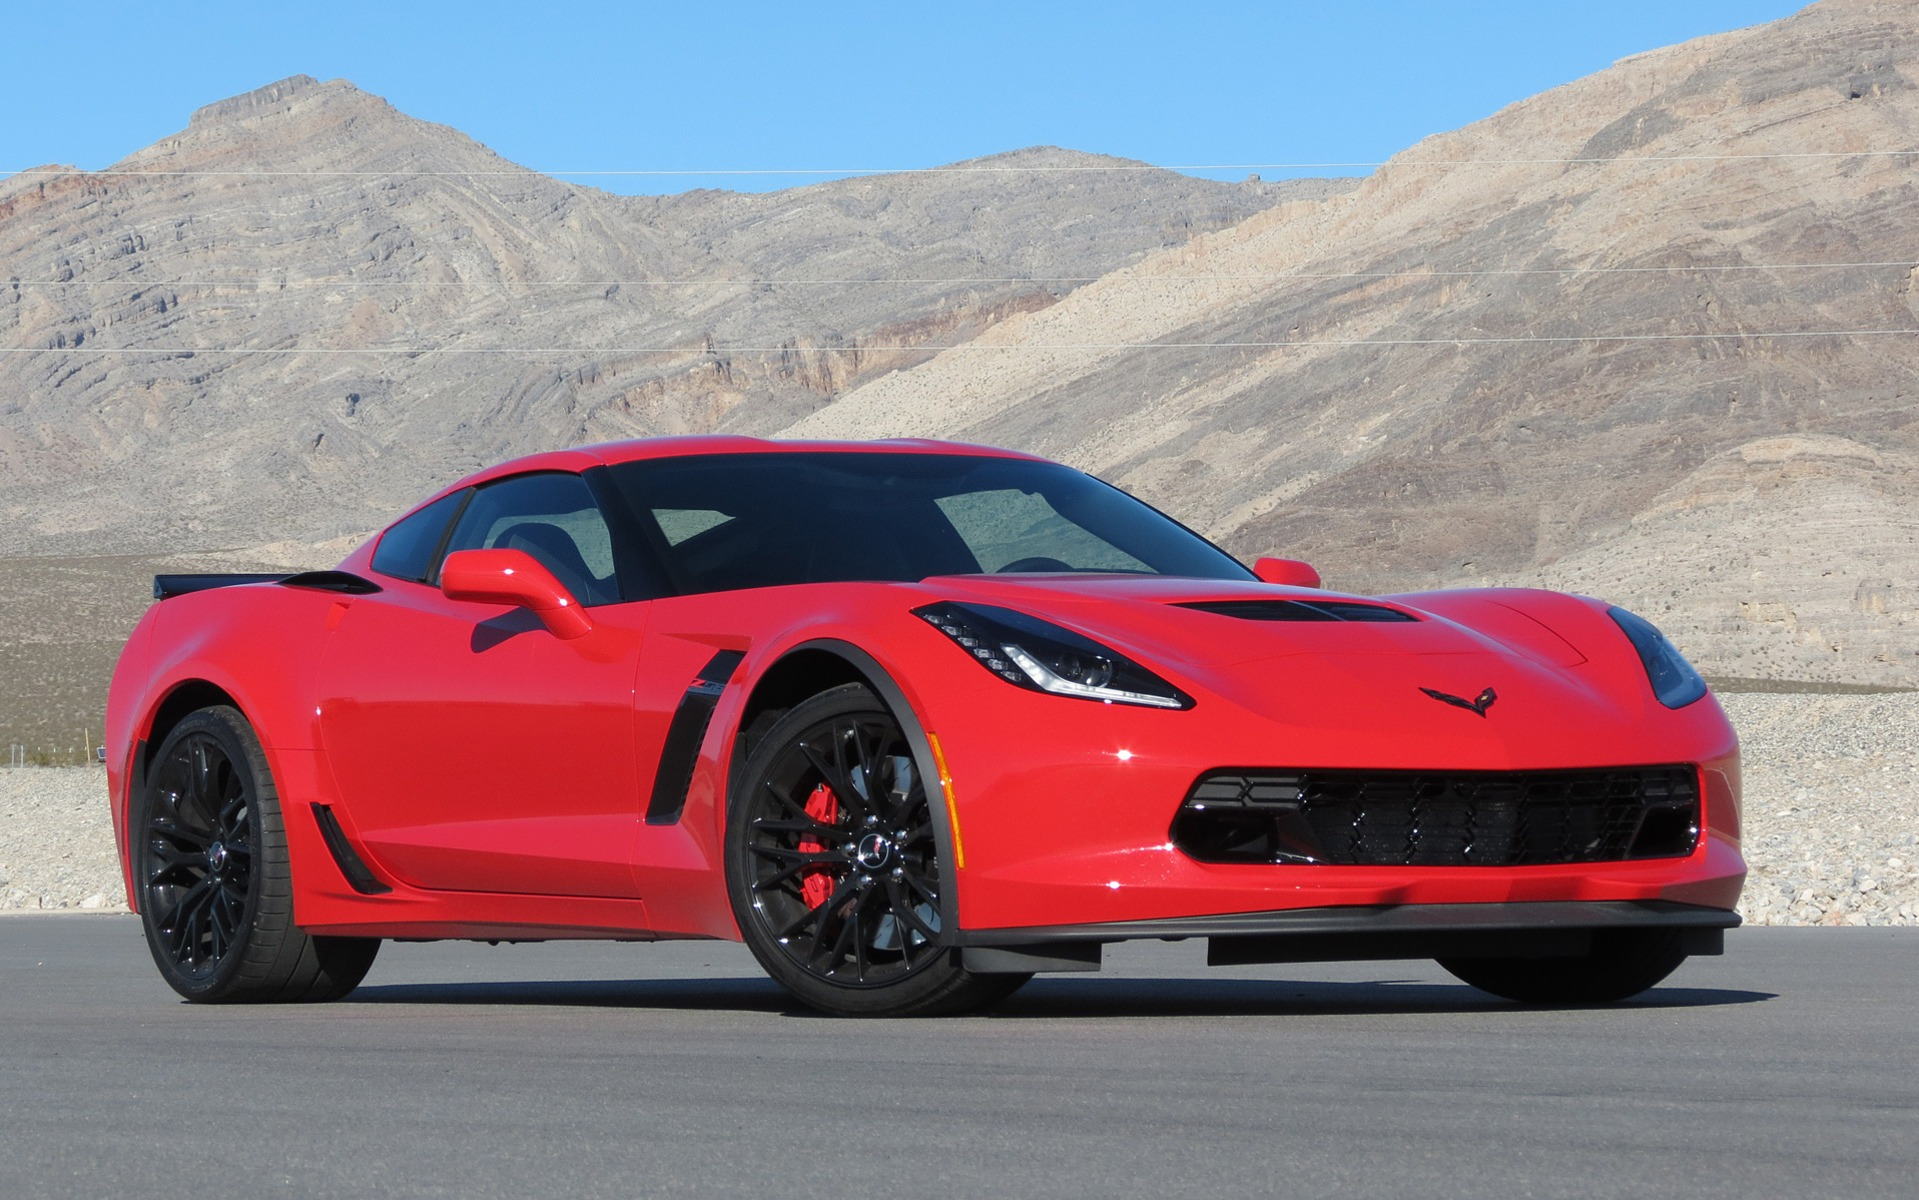 chevrolet corvette z06 2015 elle roule plus vite que son. Black Bedroom Furniture Sets. Home Design Ideas